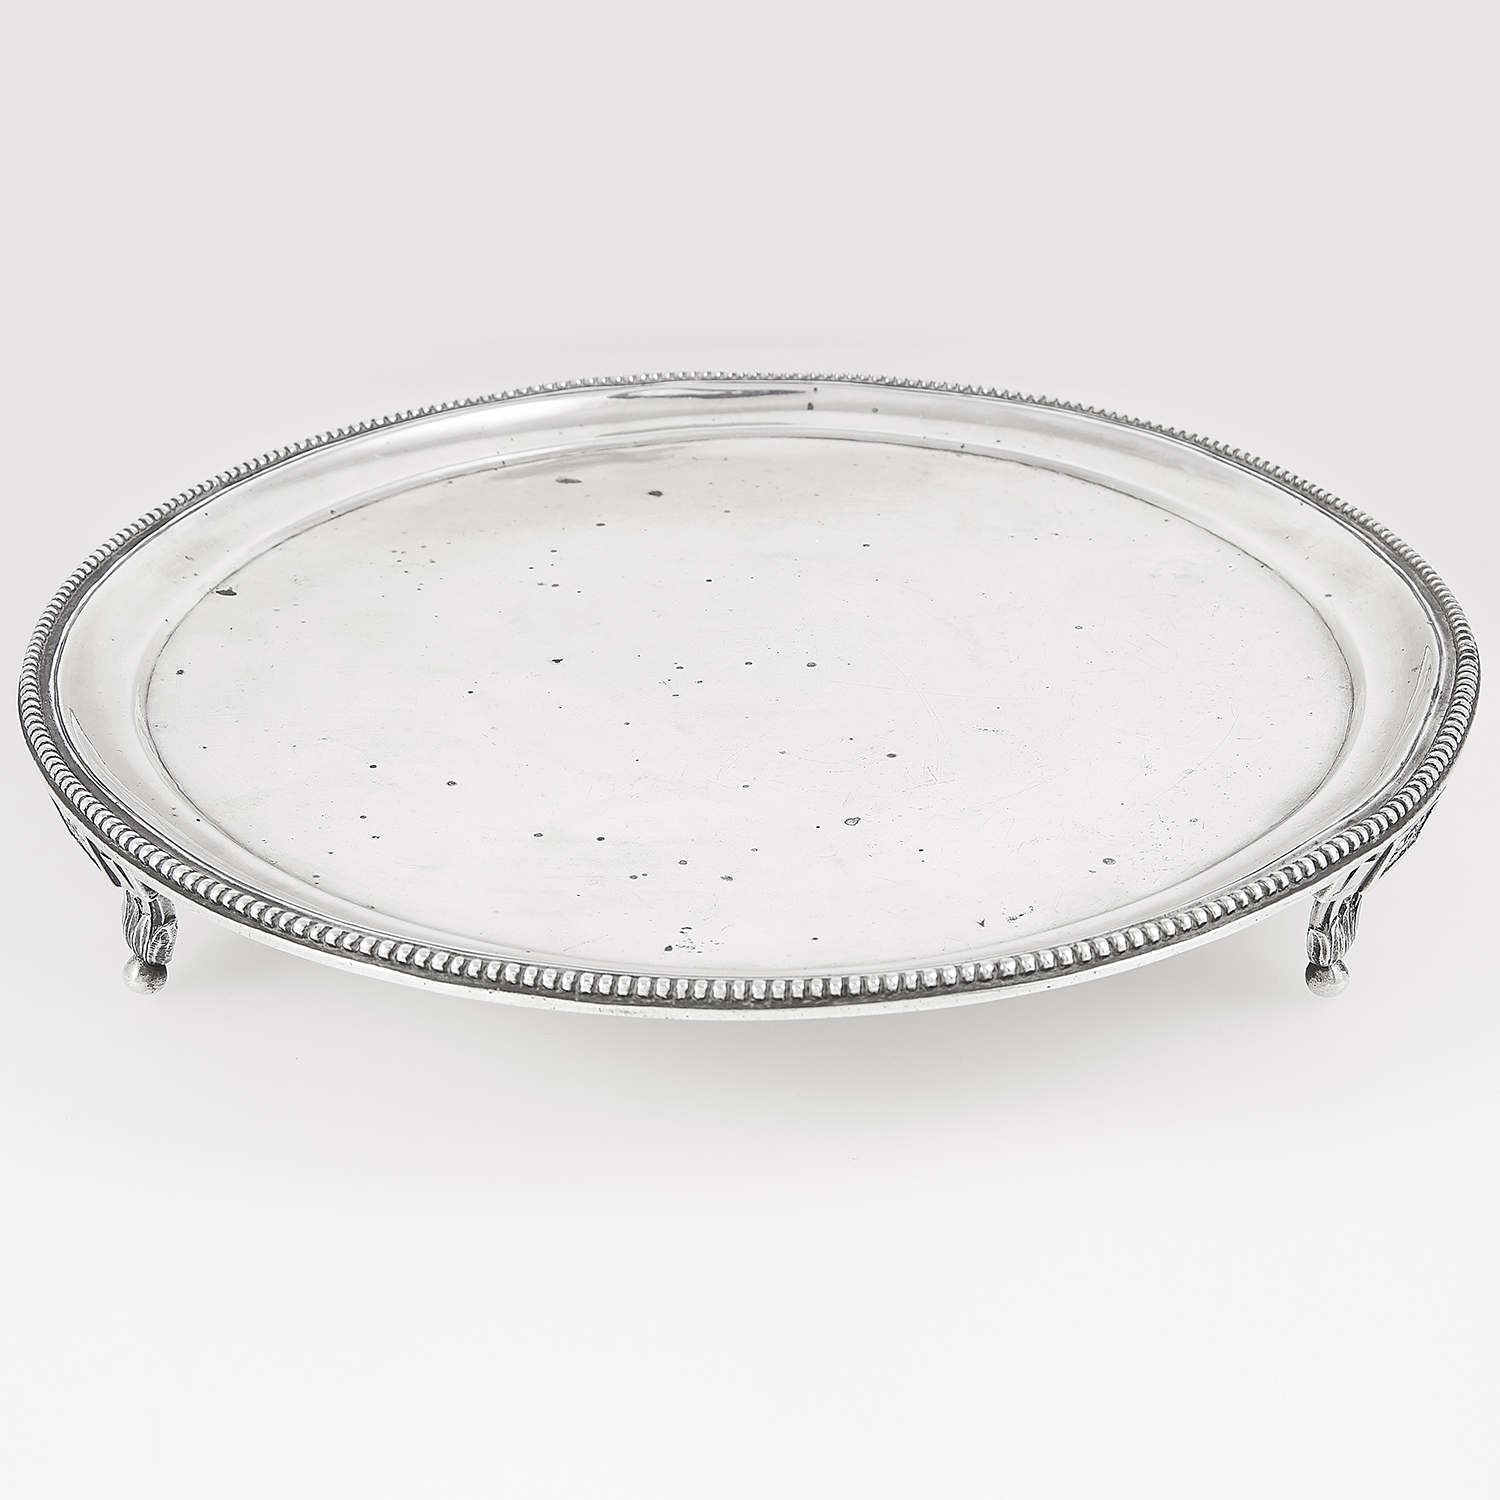 Los 17 - ANTIQUE SPANISH SILVER SALVER / TRAY, CIRCA 1780 of circular form with raised beaded border, on a